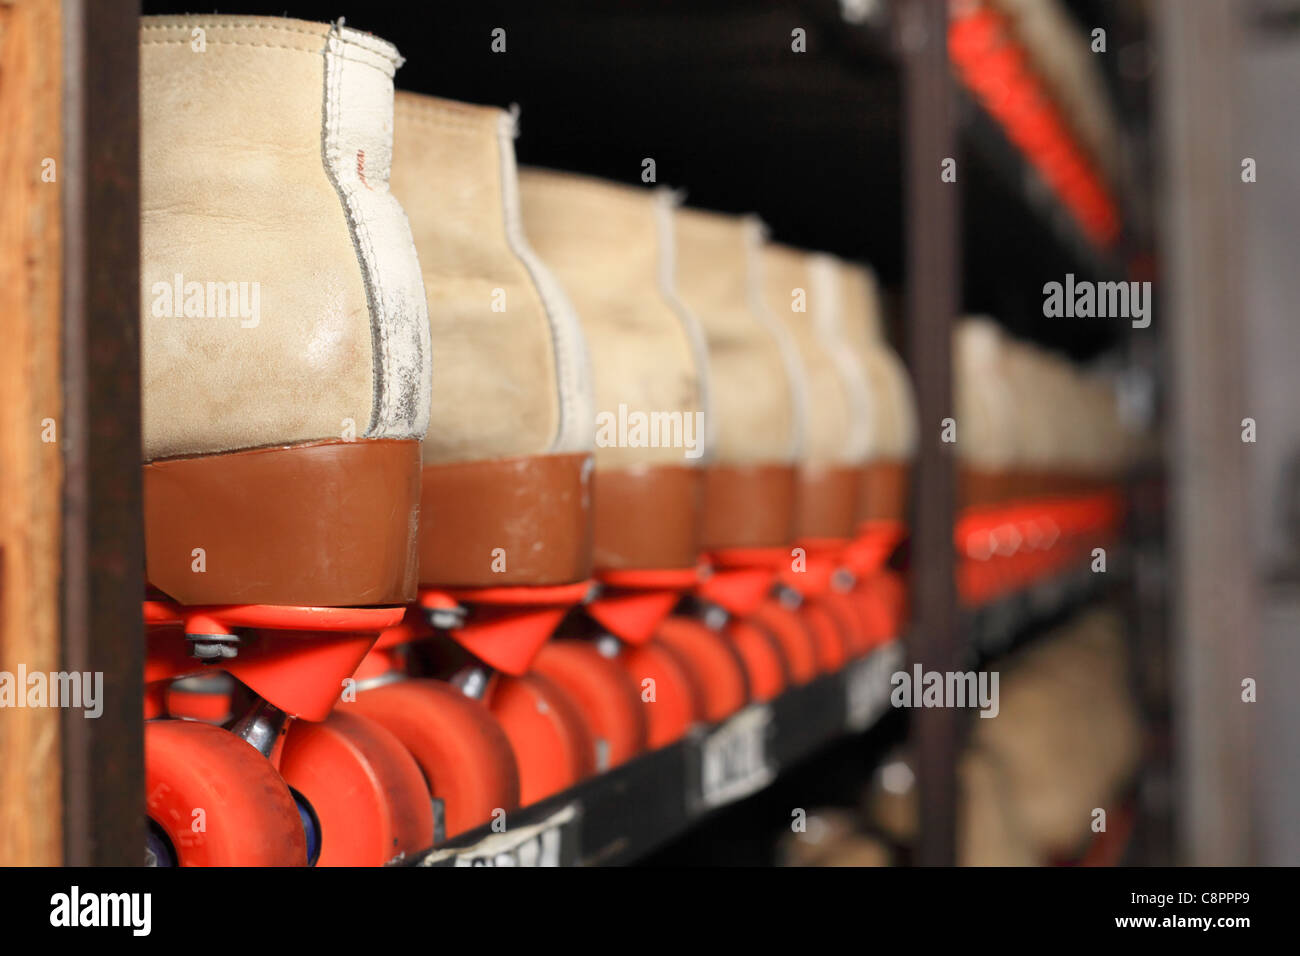 Roller skates at a rental facility lined up by size in a rack - Stock Image